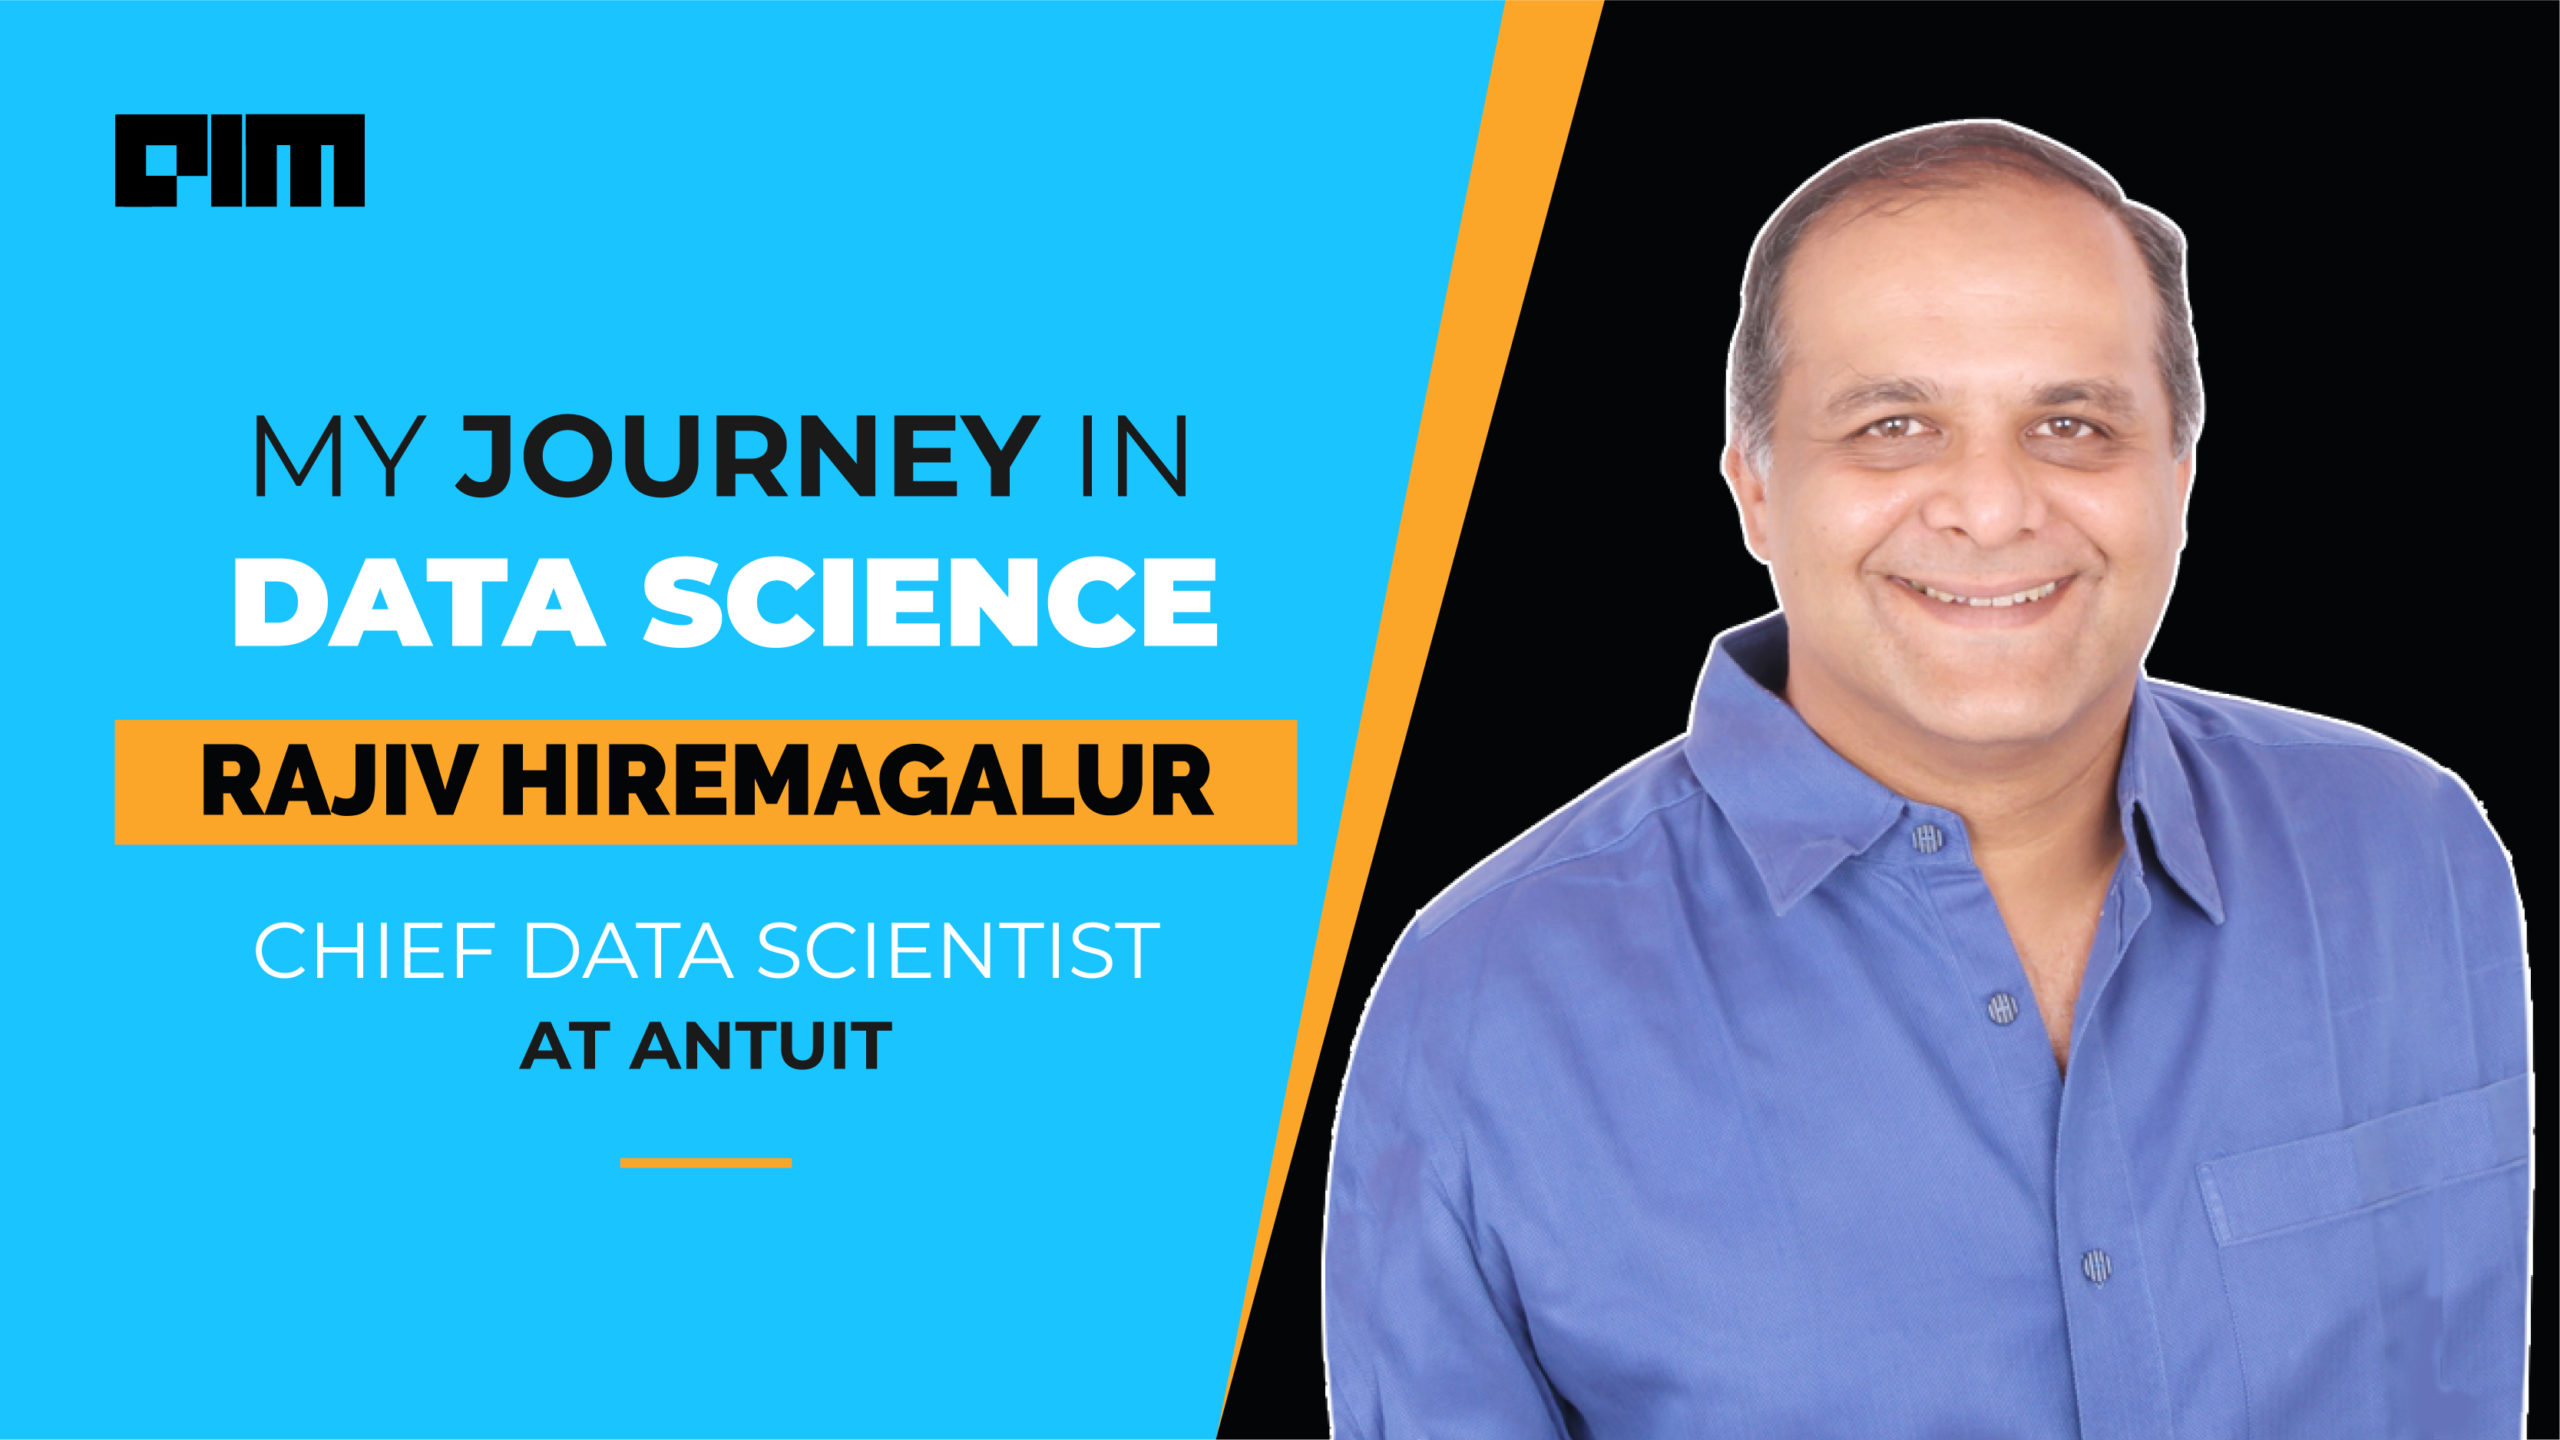 Hiremagalur Journey In Data Science